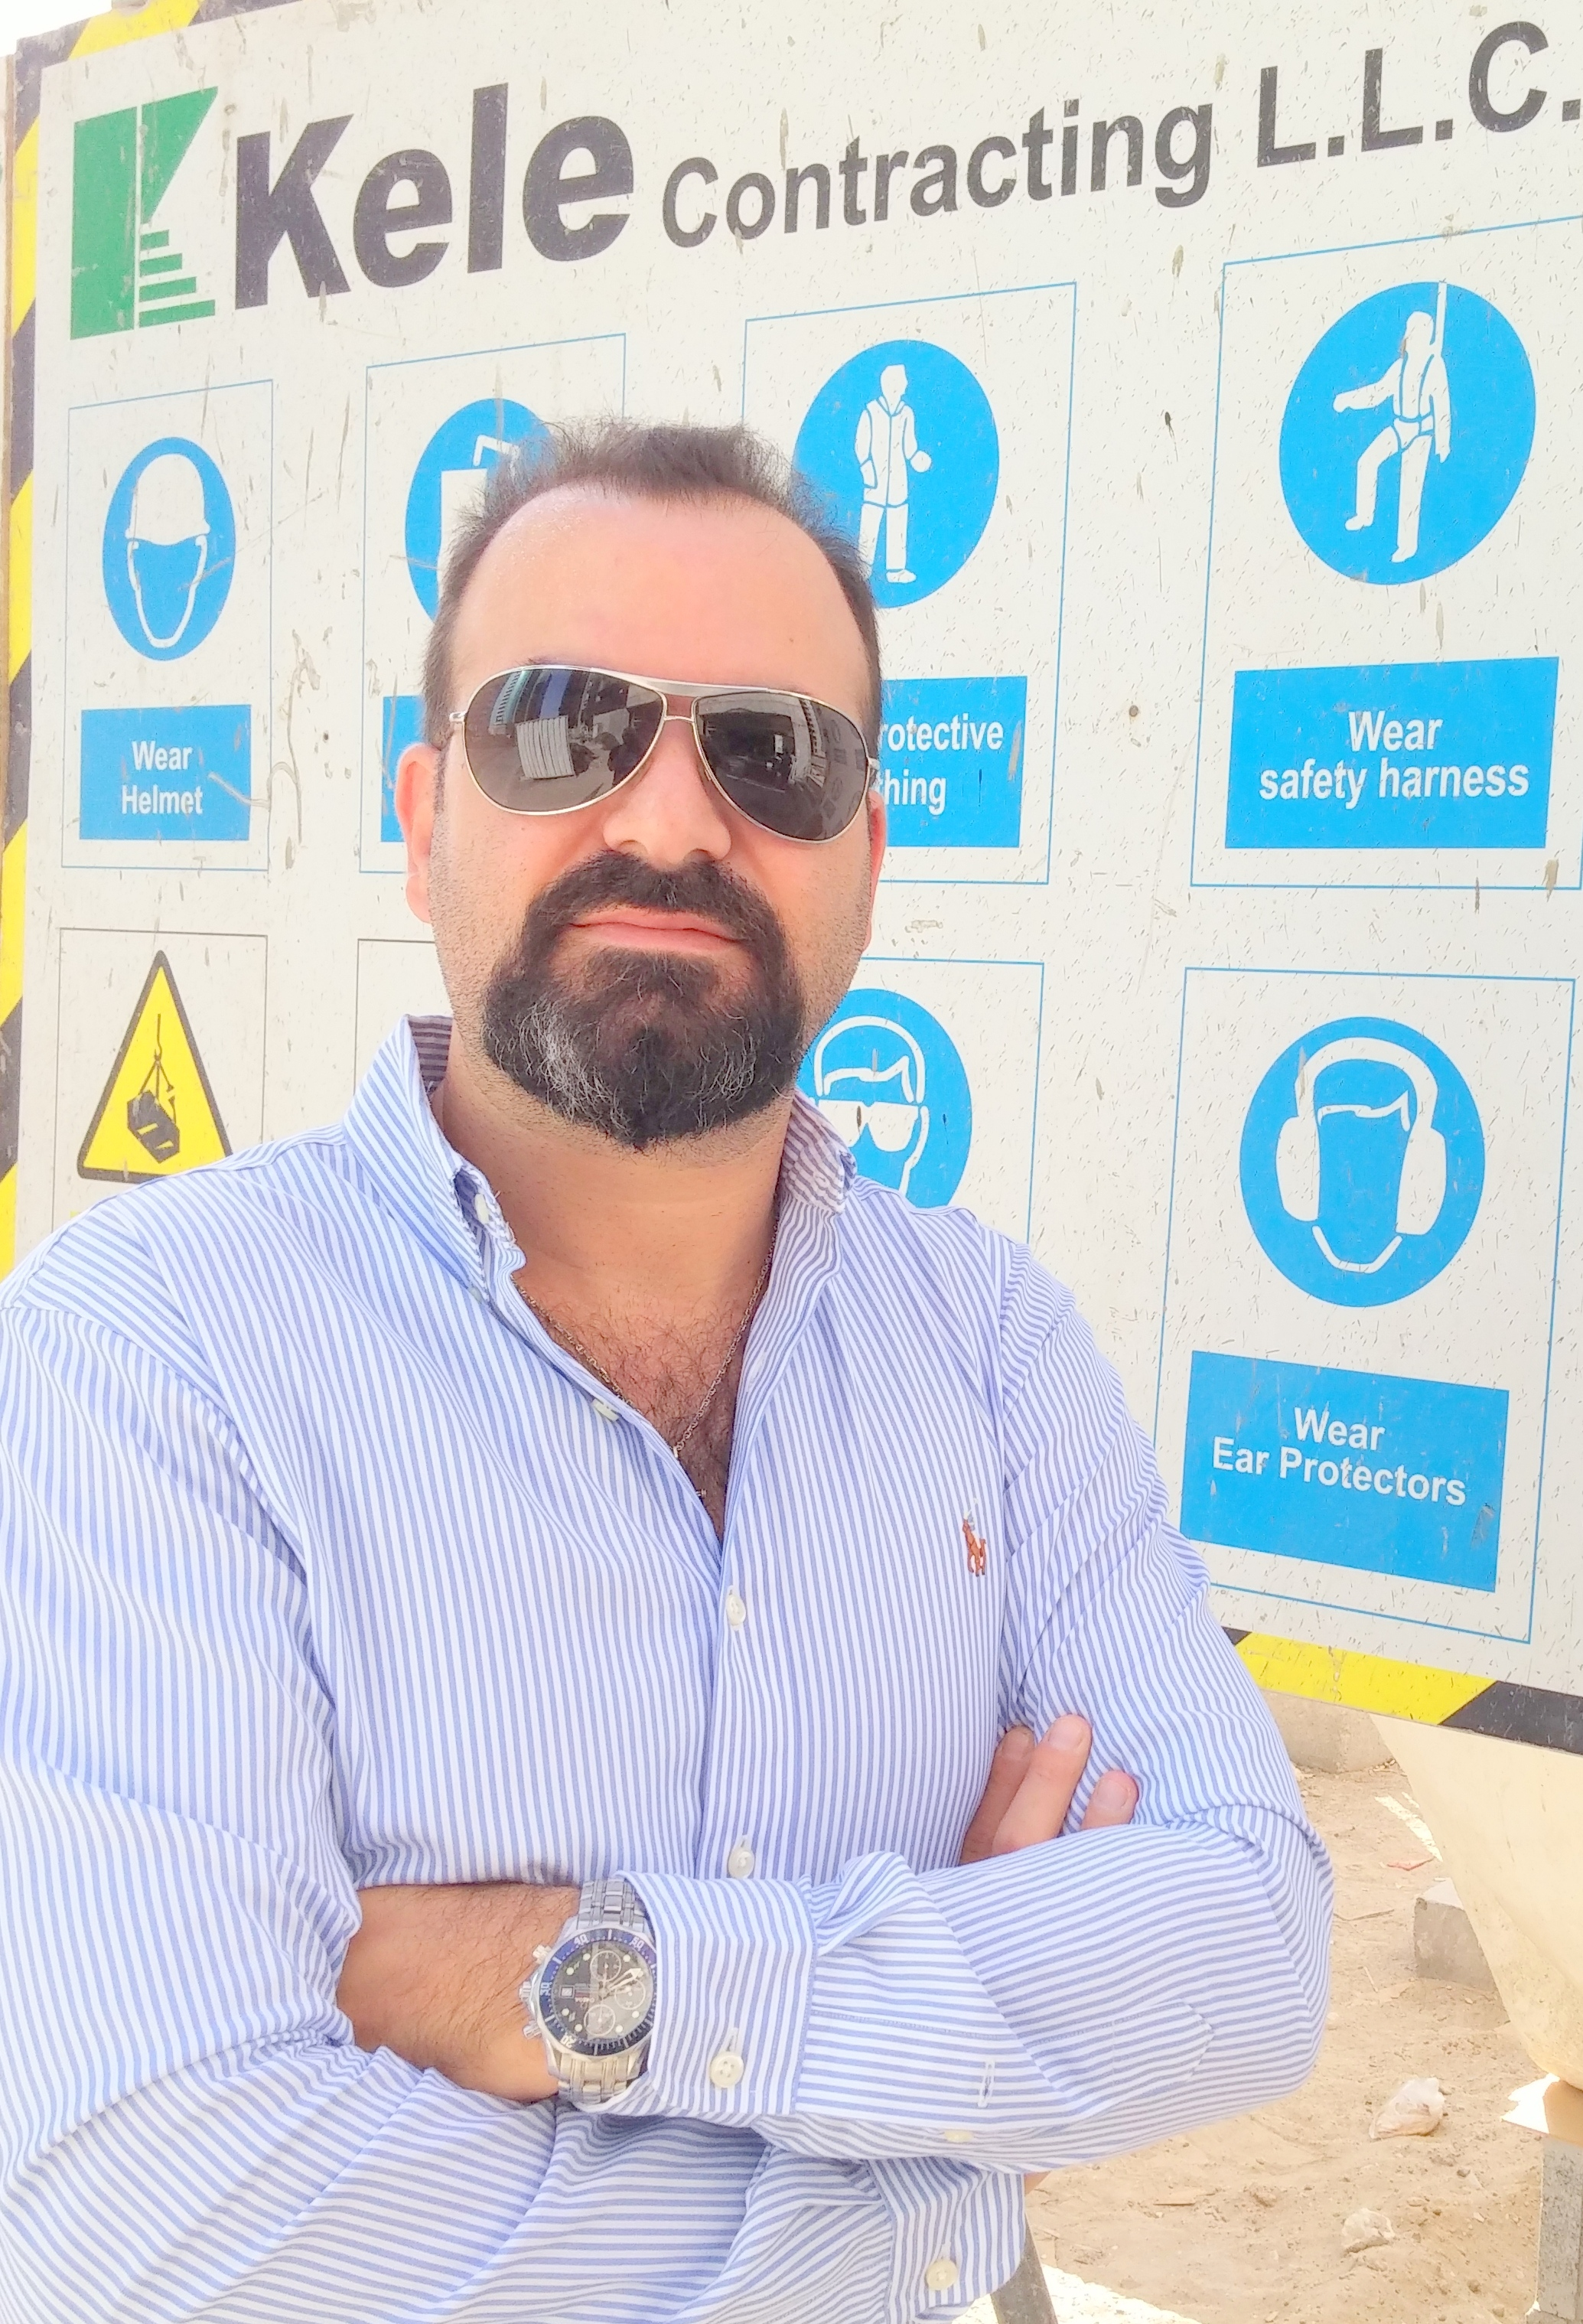 An Interview with Roger Haidar Executive Manager - Procurement & Administration Kele Contracting